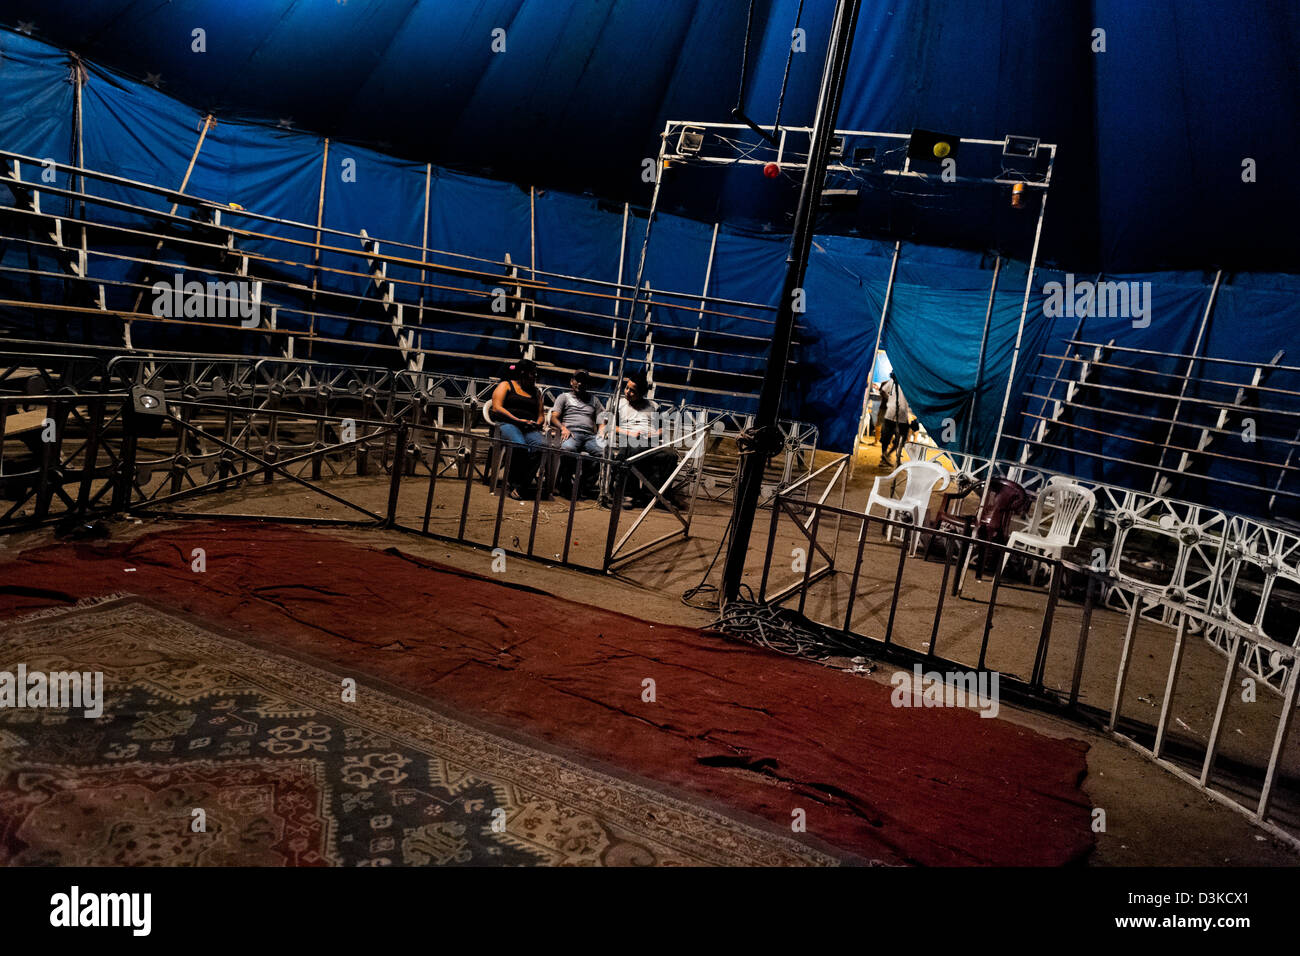 Circus visitors sit in front of the empty bleachers at the Circo Brasilia, a family run circus travelling in Central - Stock Image